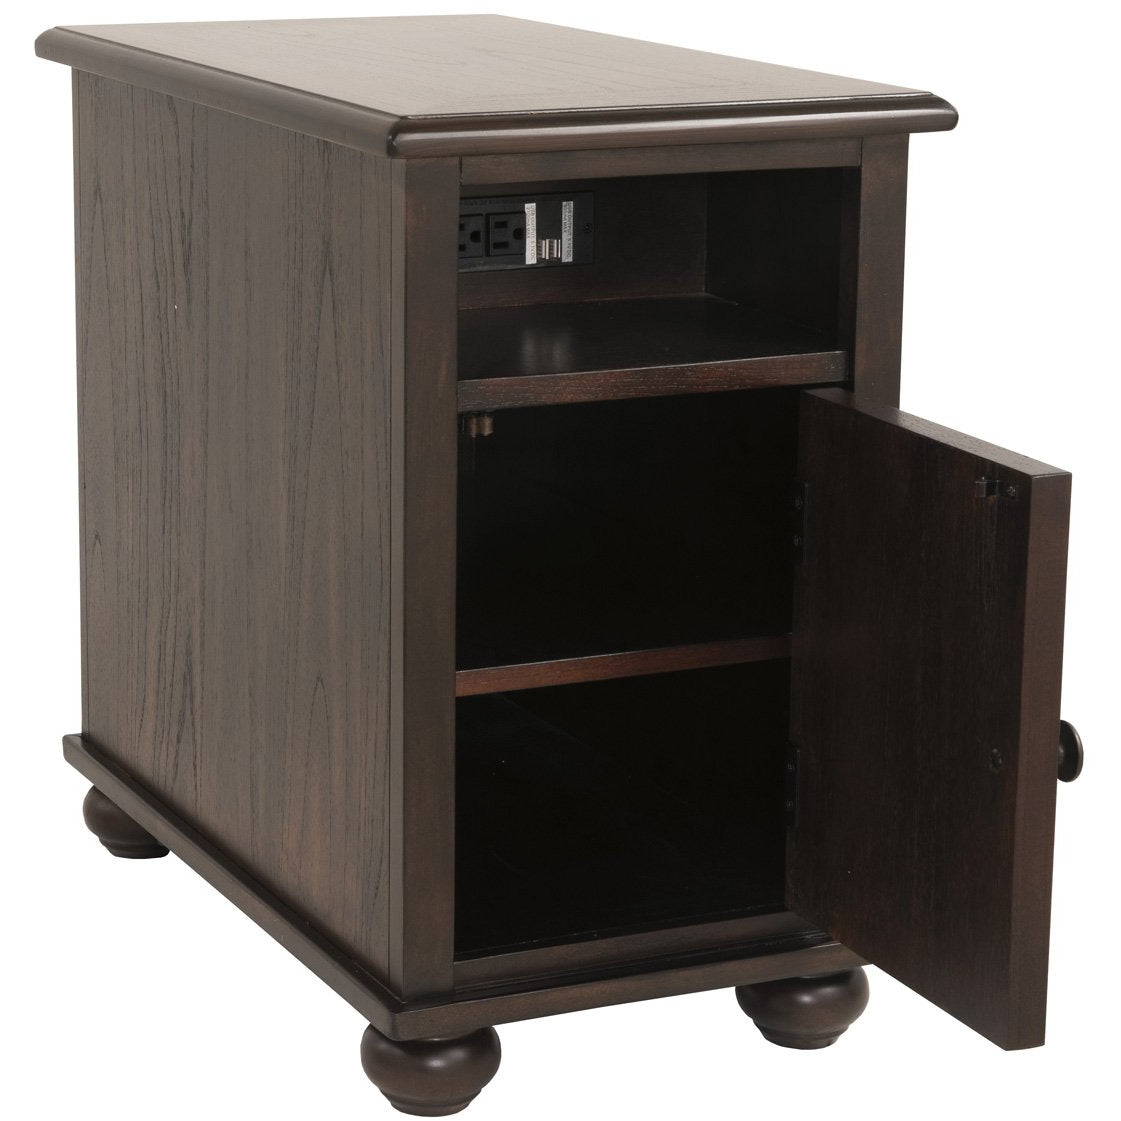 Barilanni Side Table